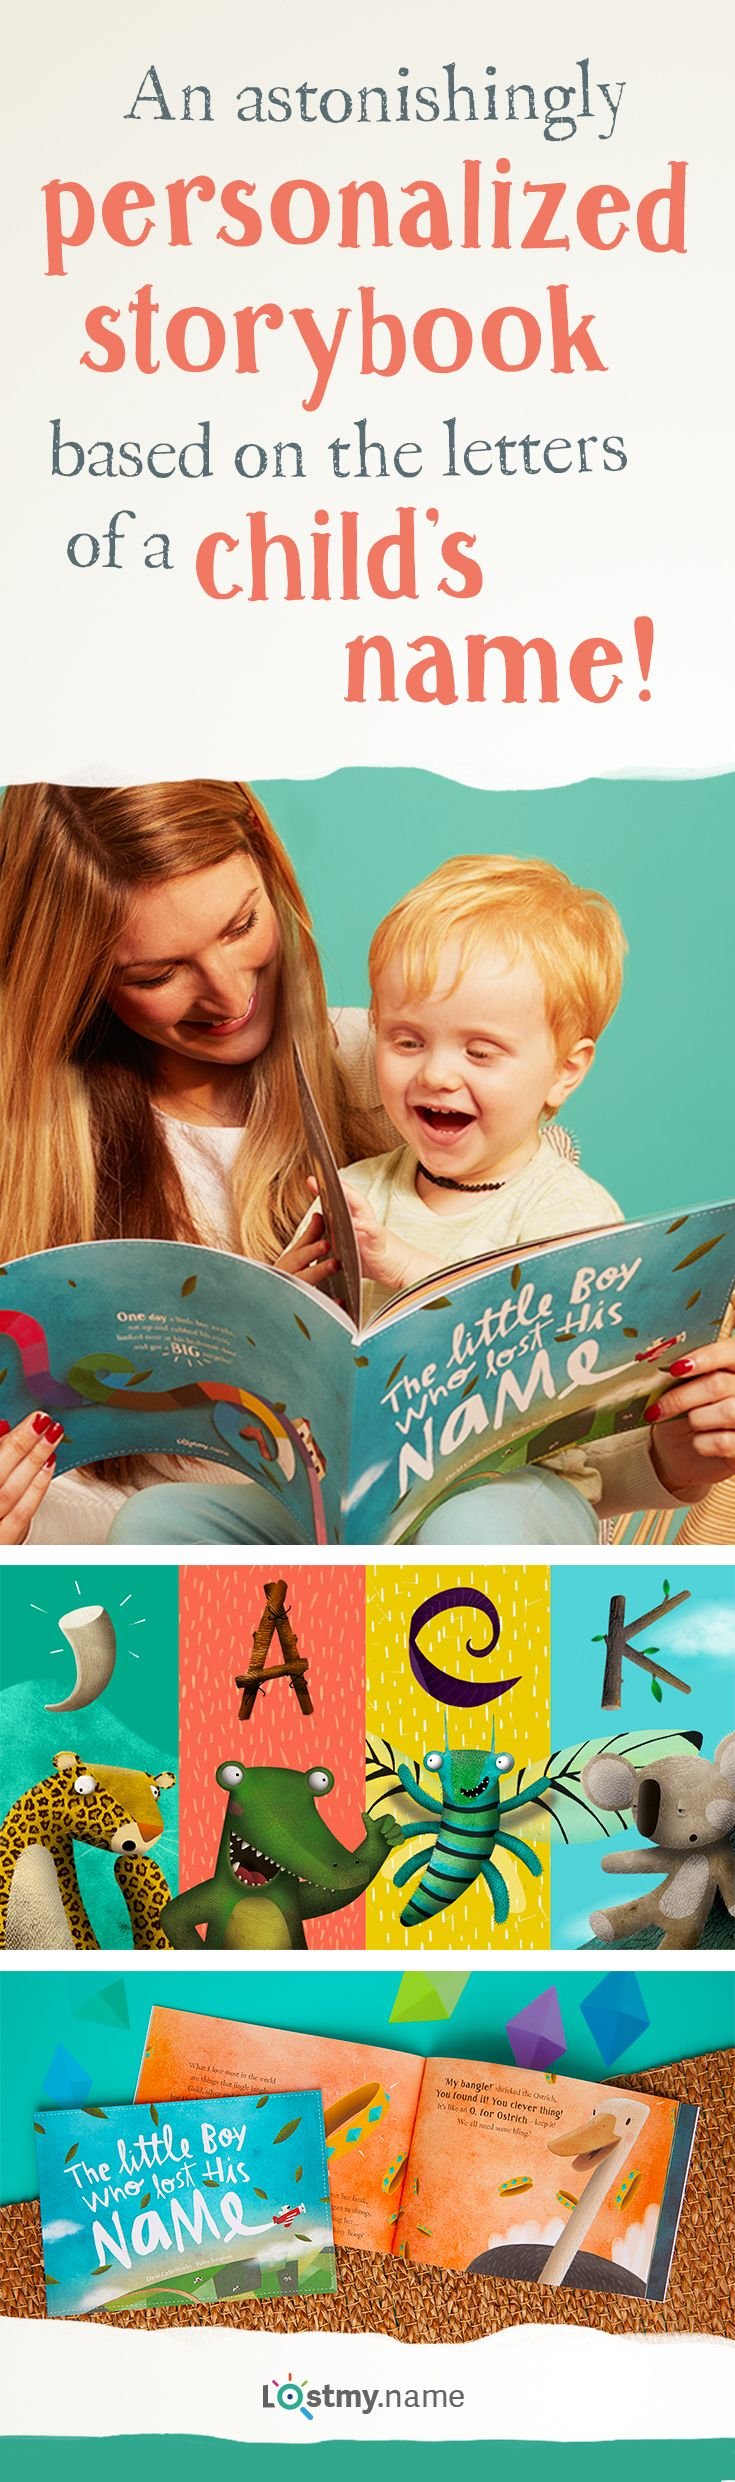 Make story time more magical with a personalized book from Lost My Name. The wonderfully written and beautifully illustrated personalized book takes your child on an adventure to find their missing name, collecting letters from the exciting characters they meet. Each book is made to order and personalized so it's unique and special to your child. Receive free shipping when you order today.